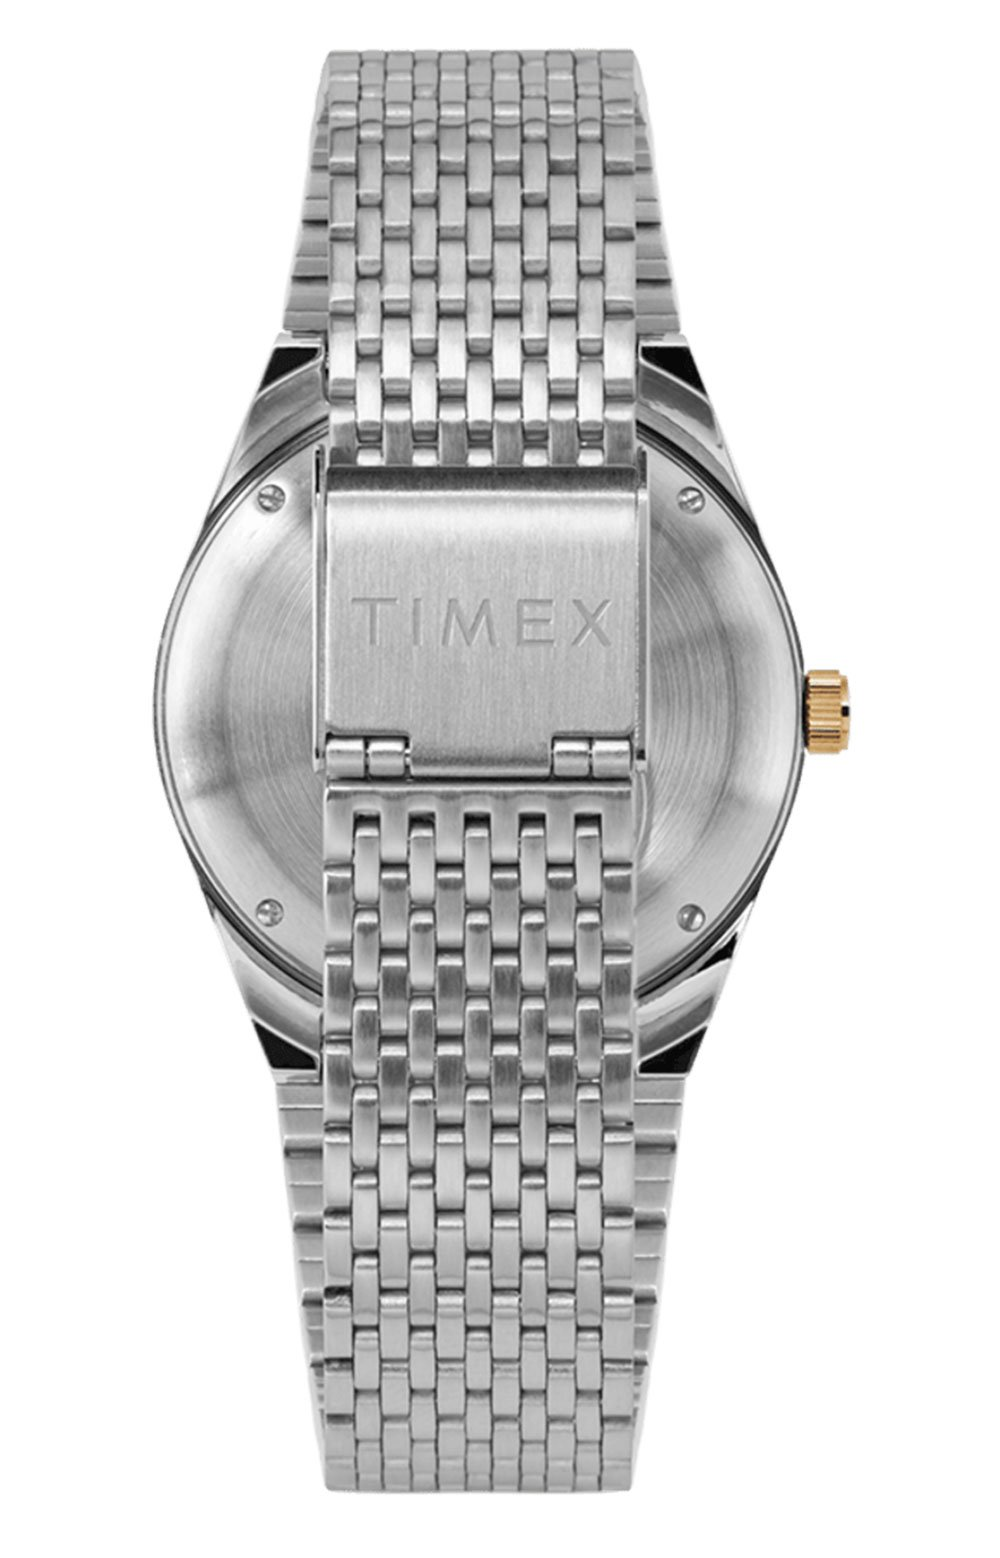 (TW2T80800ZV) Q Timex Reissue Falcon Eye 38mm Stainless Steel Bracelet Watch - Stainless Stee 3